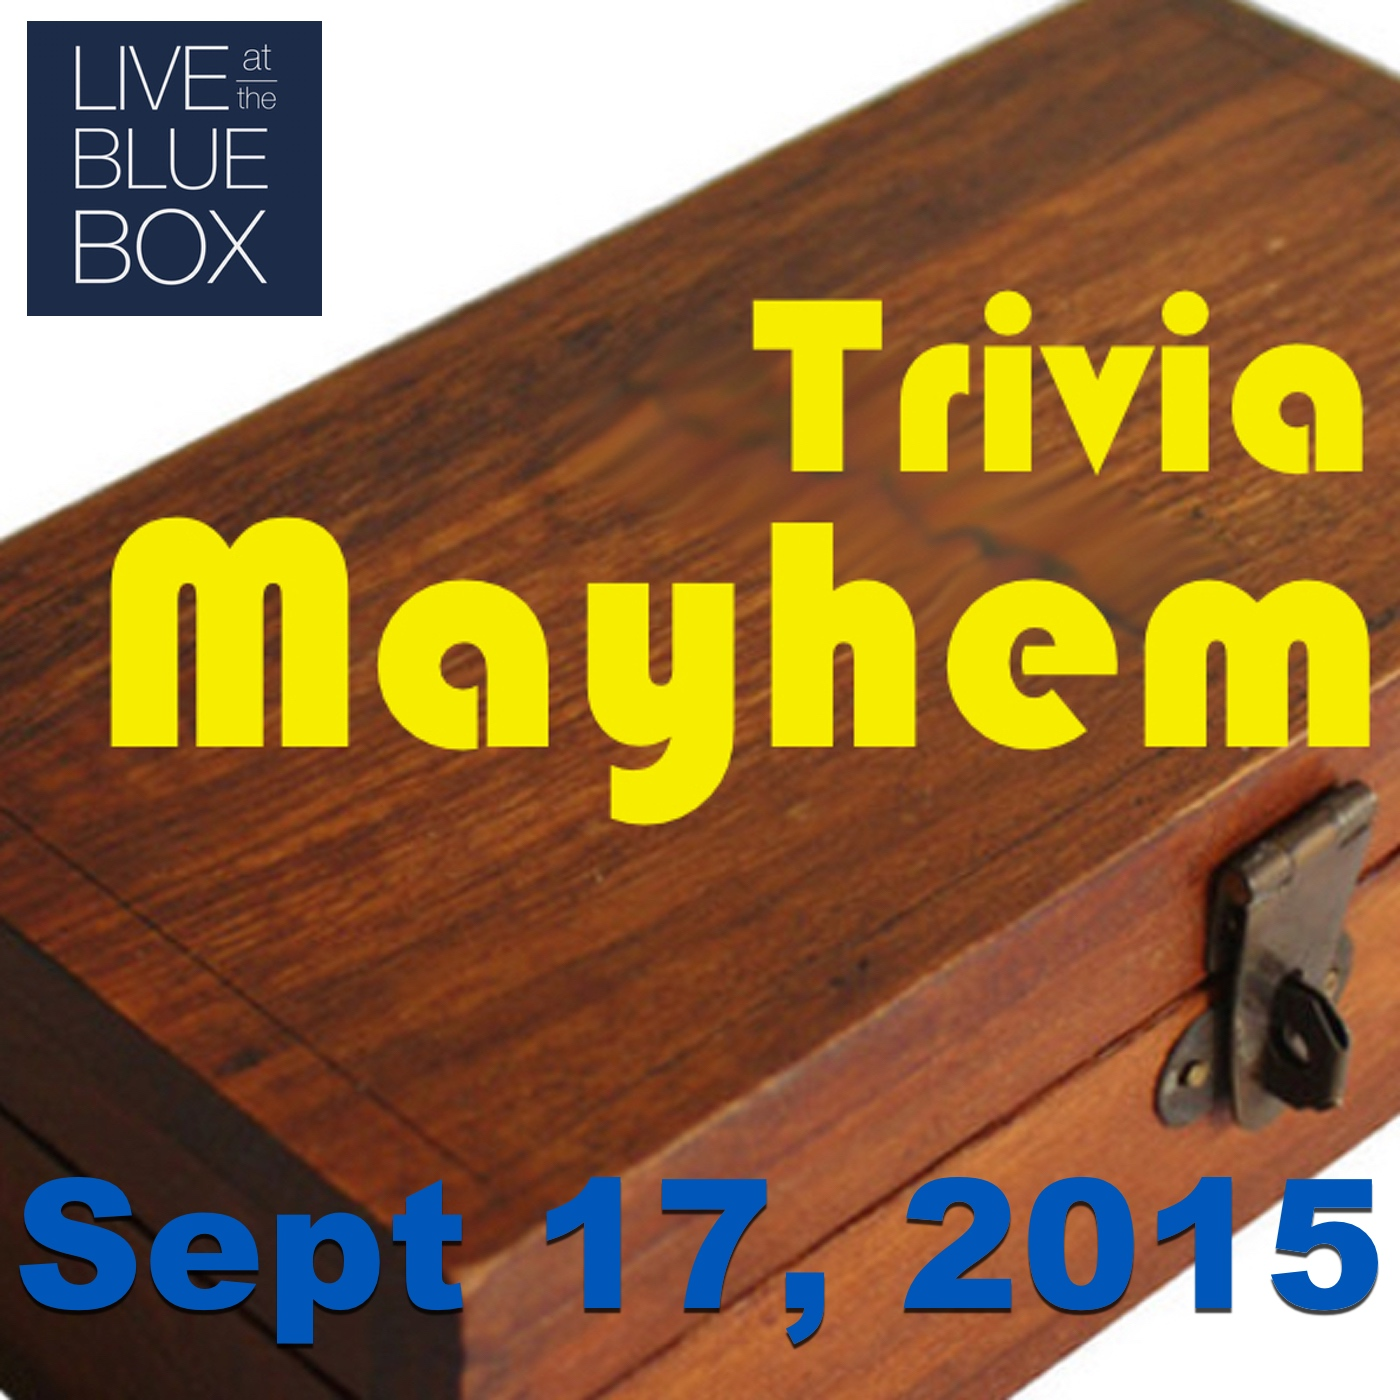 Trivia Mayhem 9-17-15 Live at the Blue Box